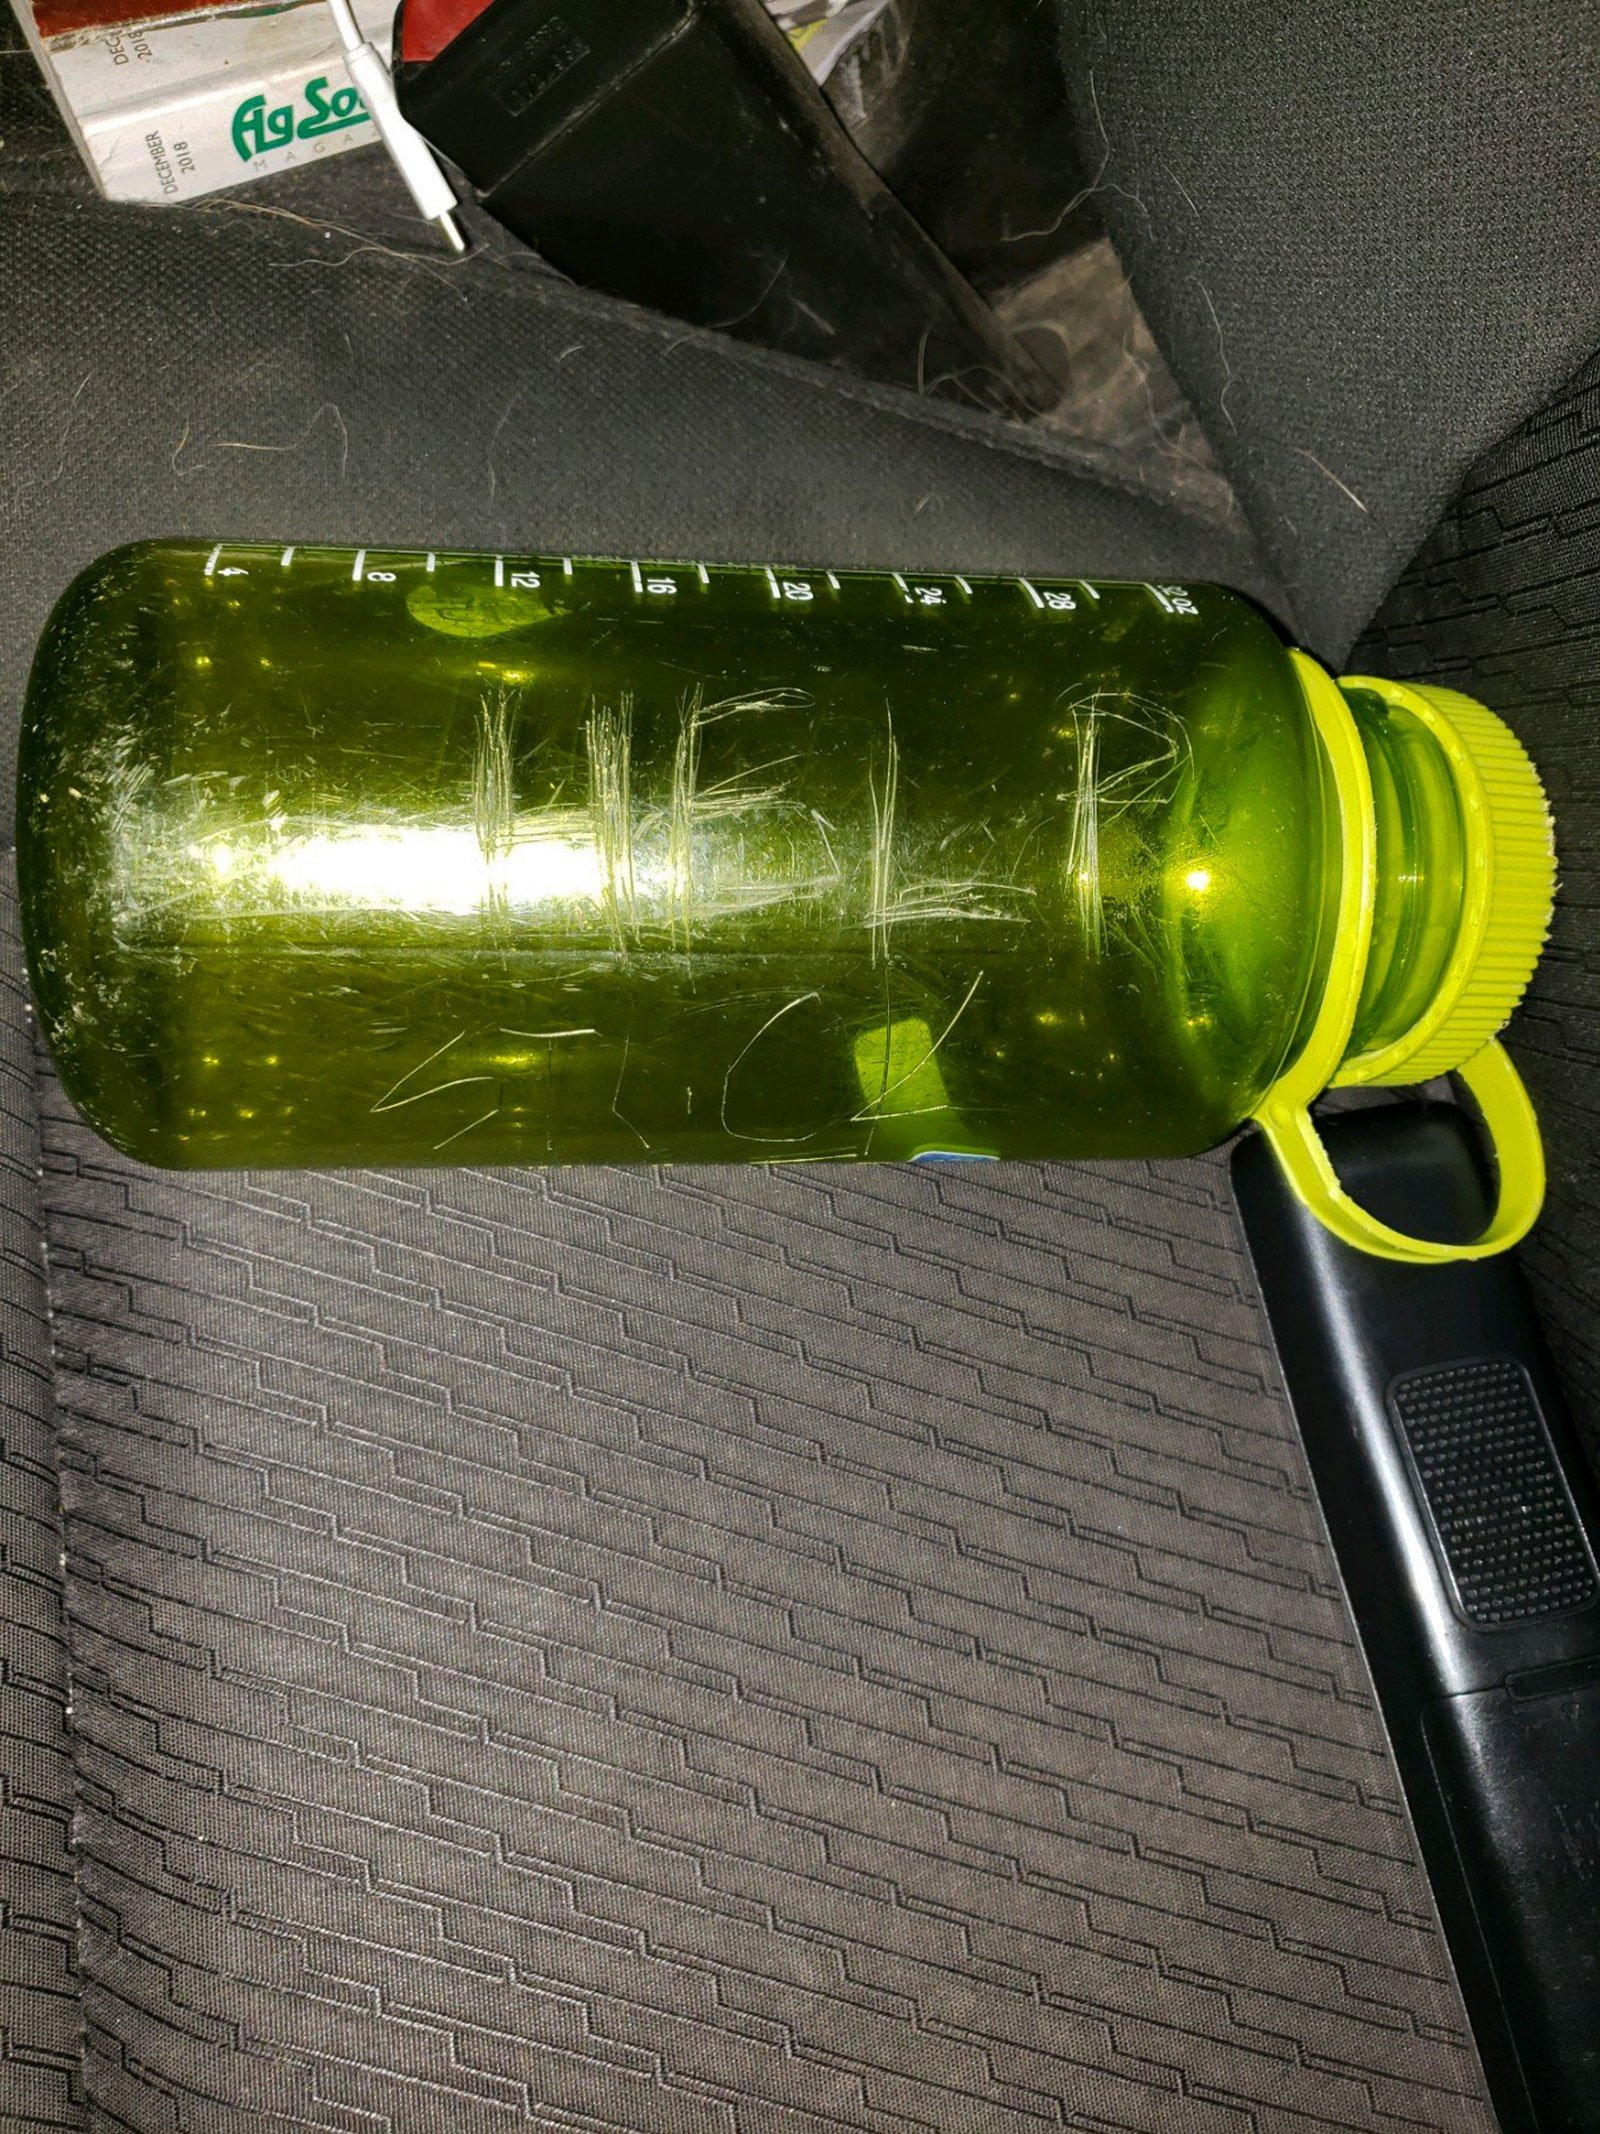 The family carved 'HELP' on a green bottle